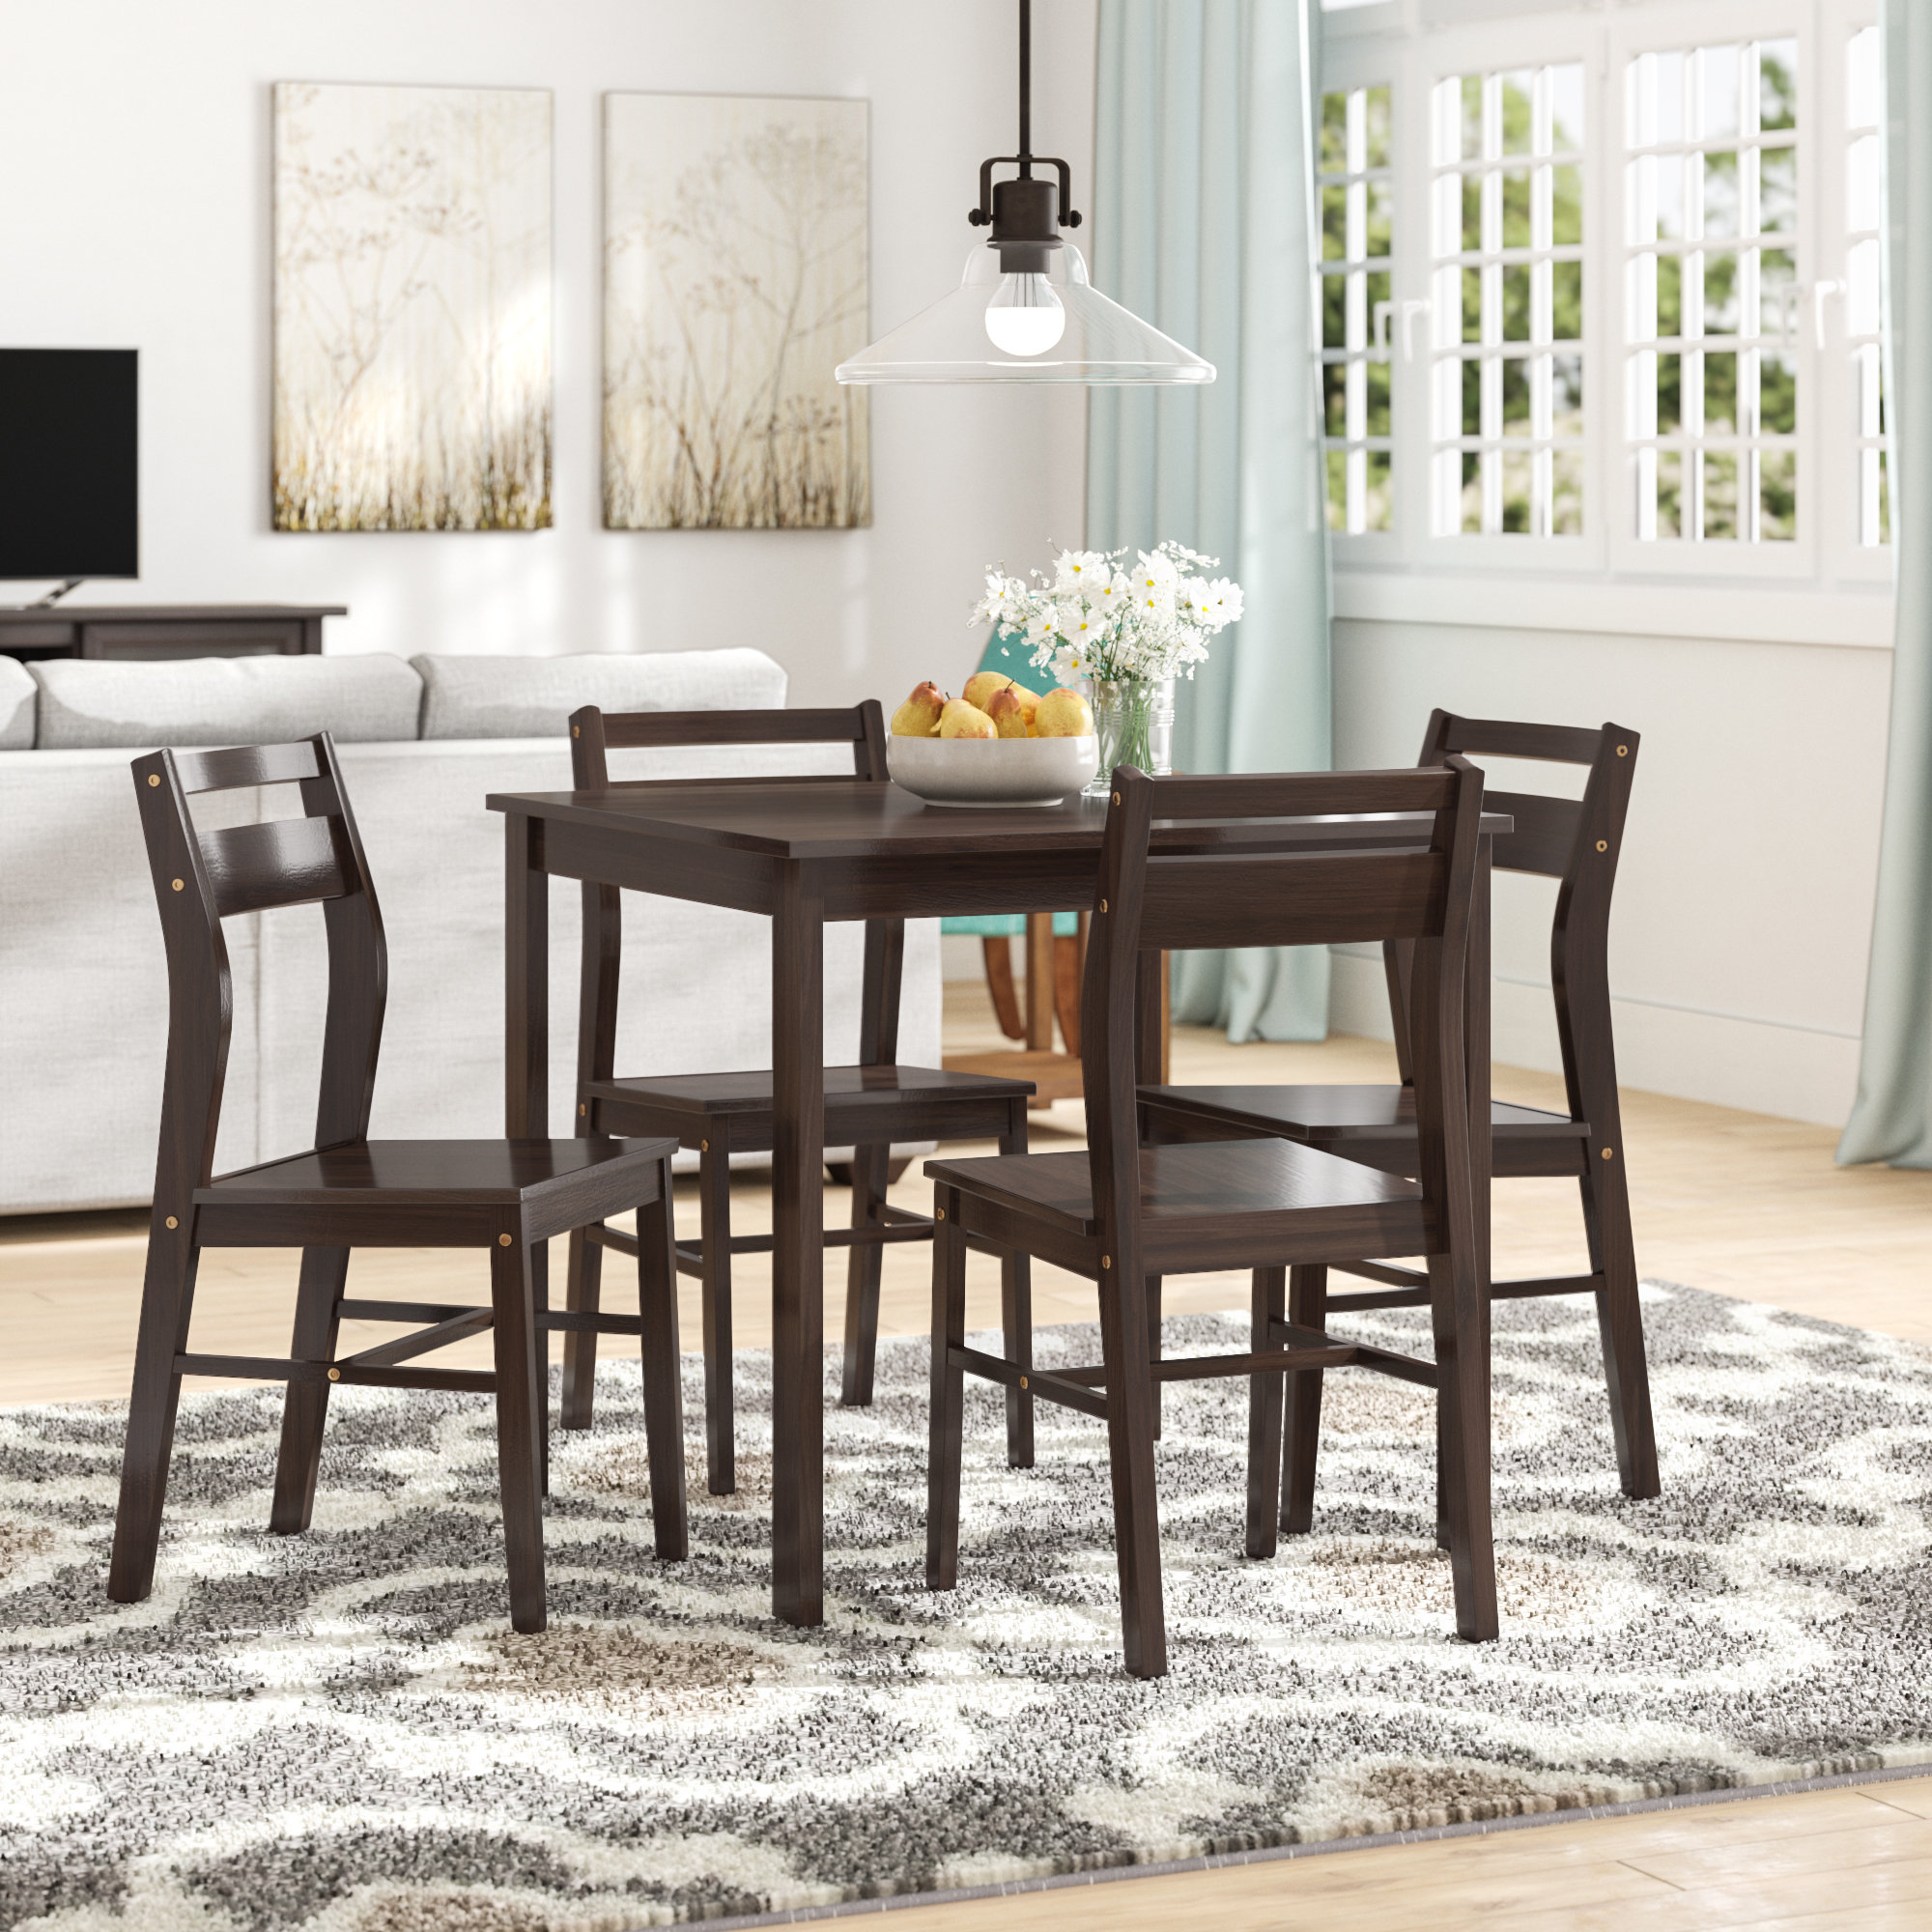 Hersom 5 Piece Dining Set Within Most Up To Date Tejeda 5 Piece Dining Sets (View 8 of 20)